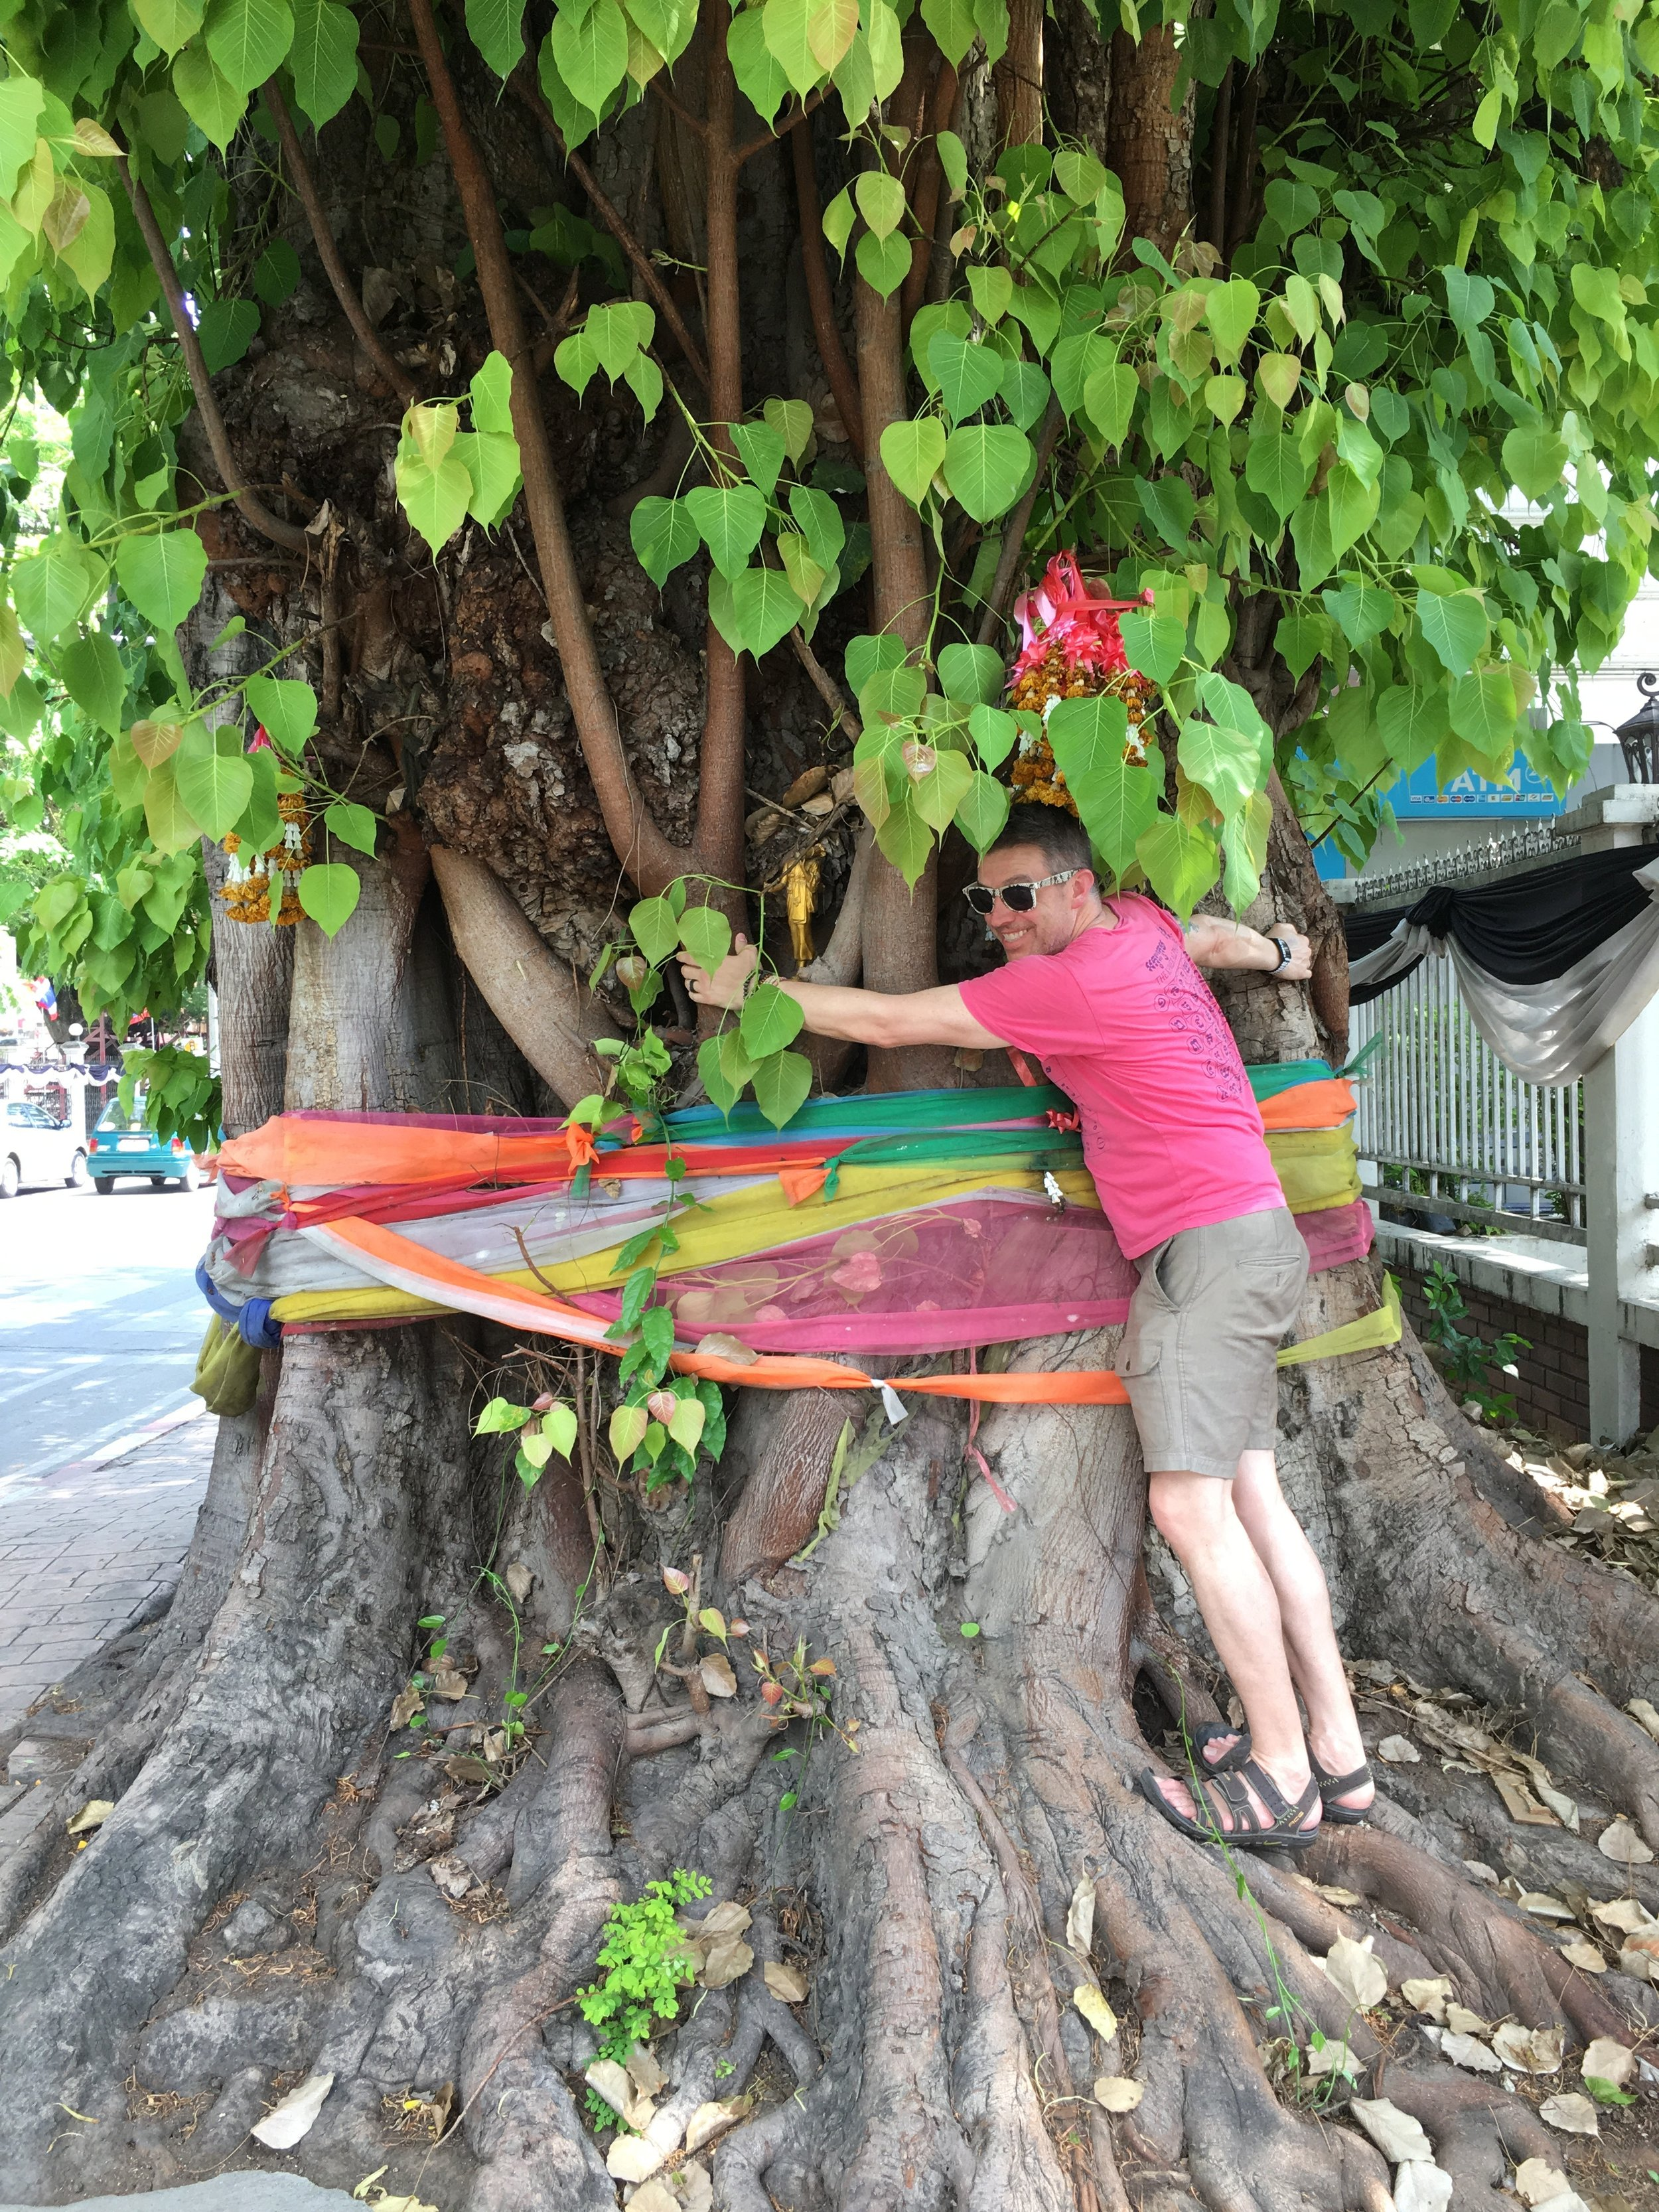 Tree-hugging Wally is part of a long-standing worldwide tradition of worshiping trees